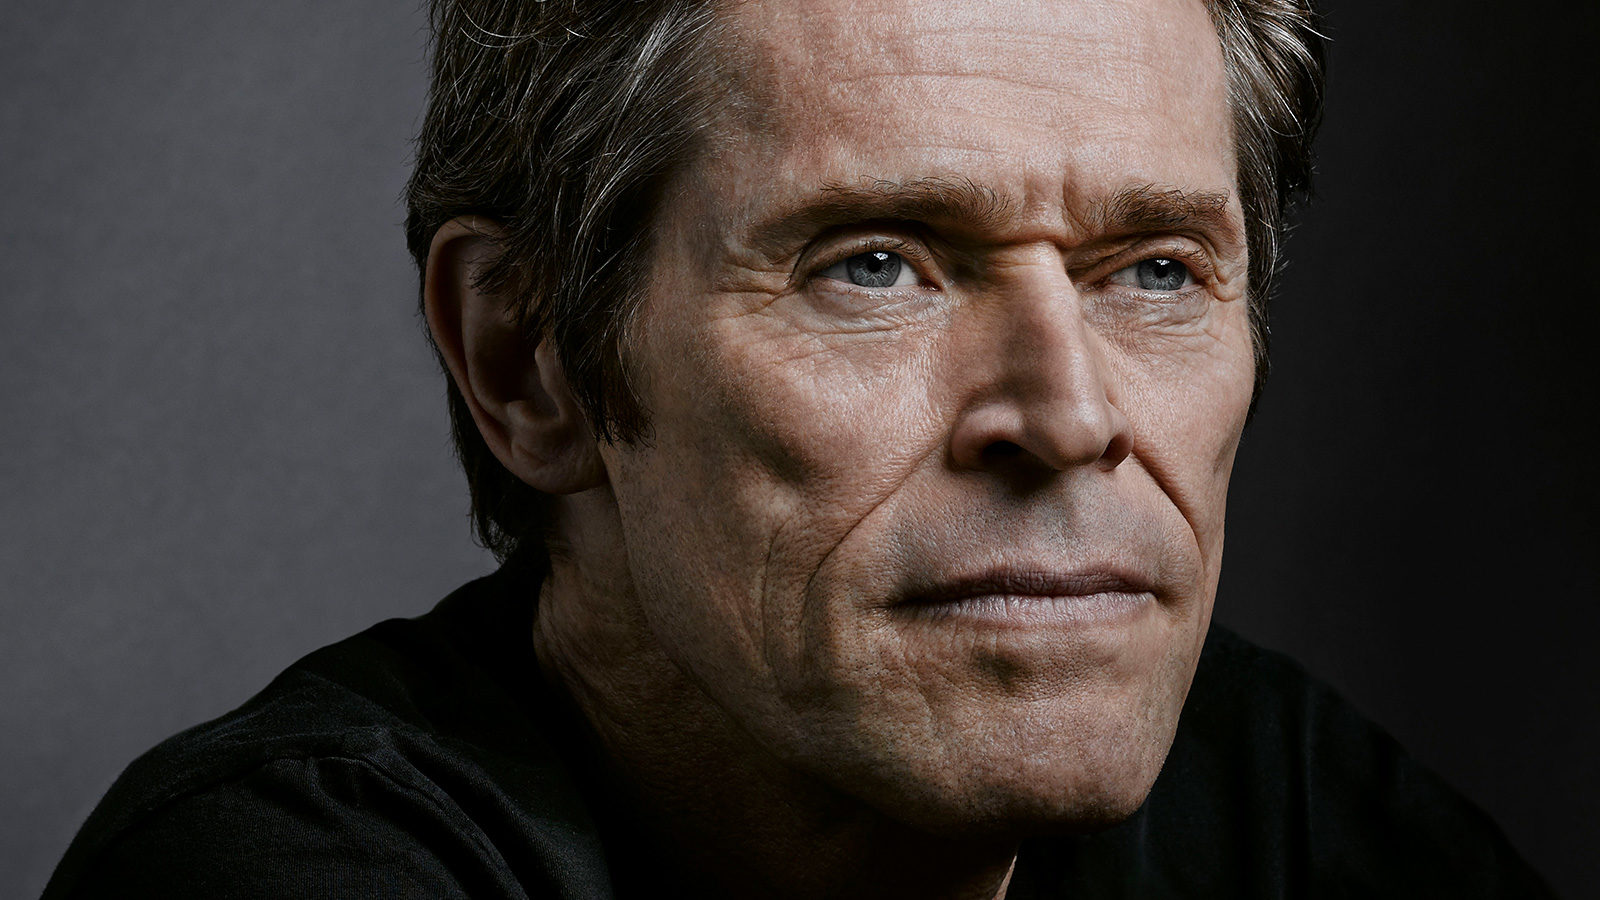 A Conversation with Willem Dafoe